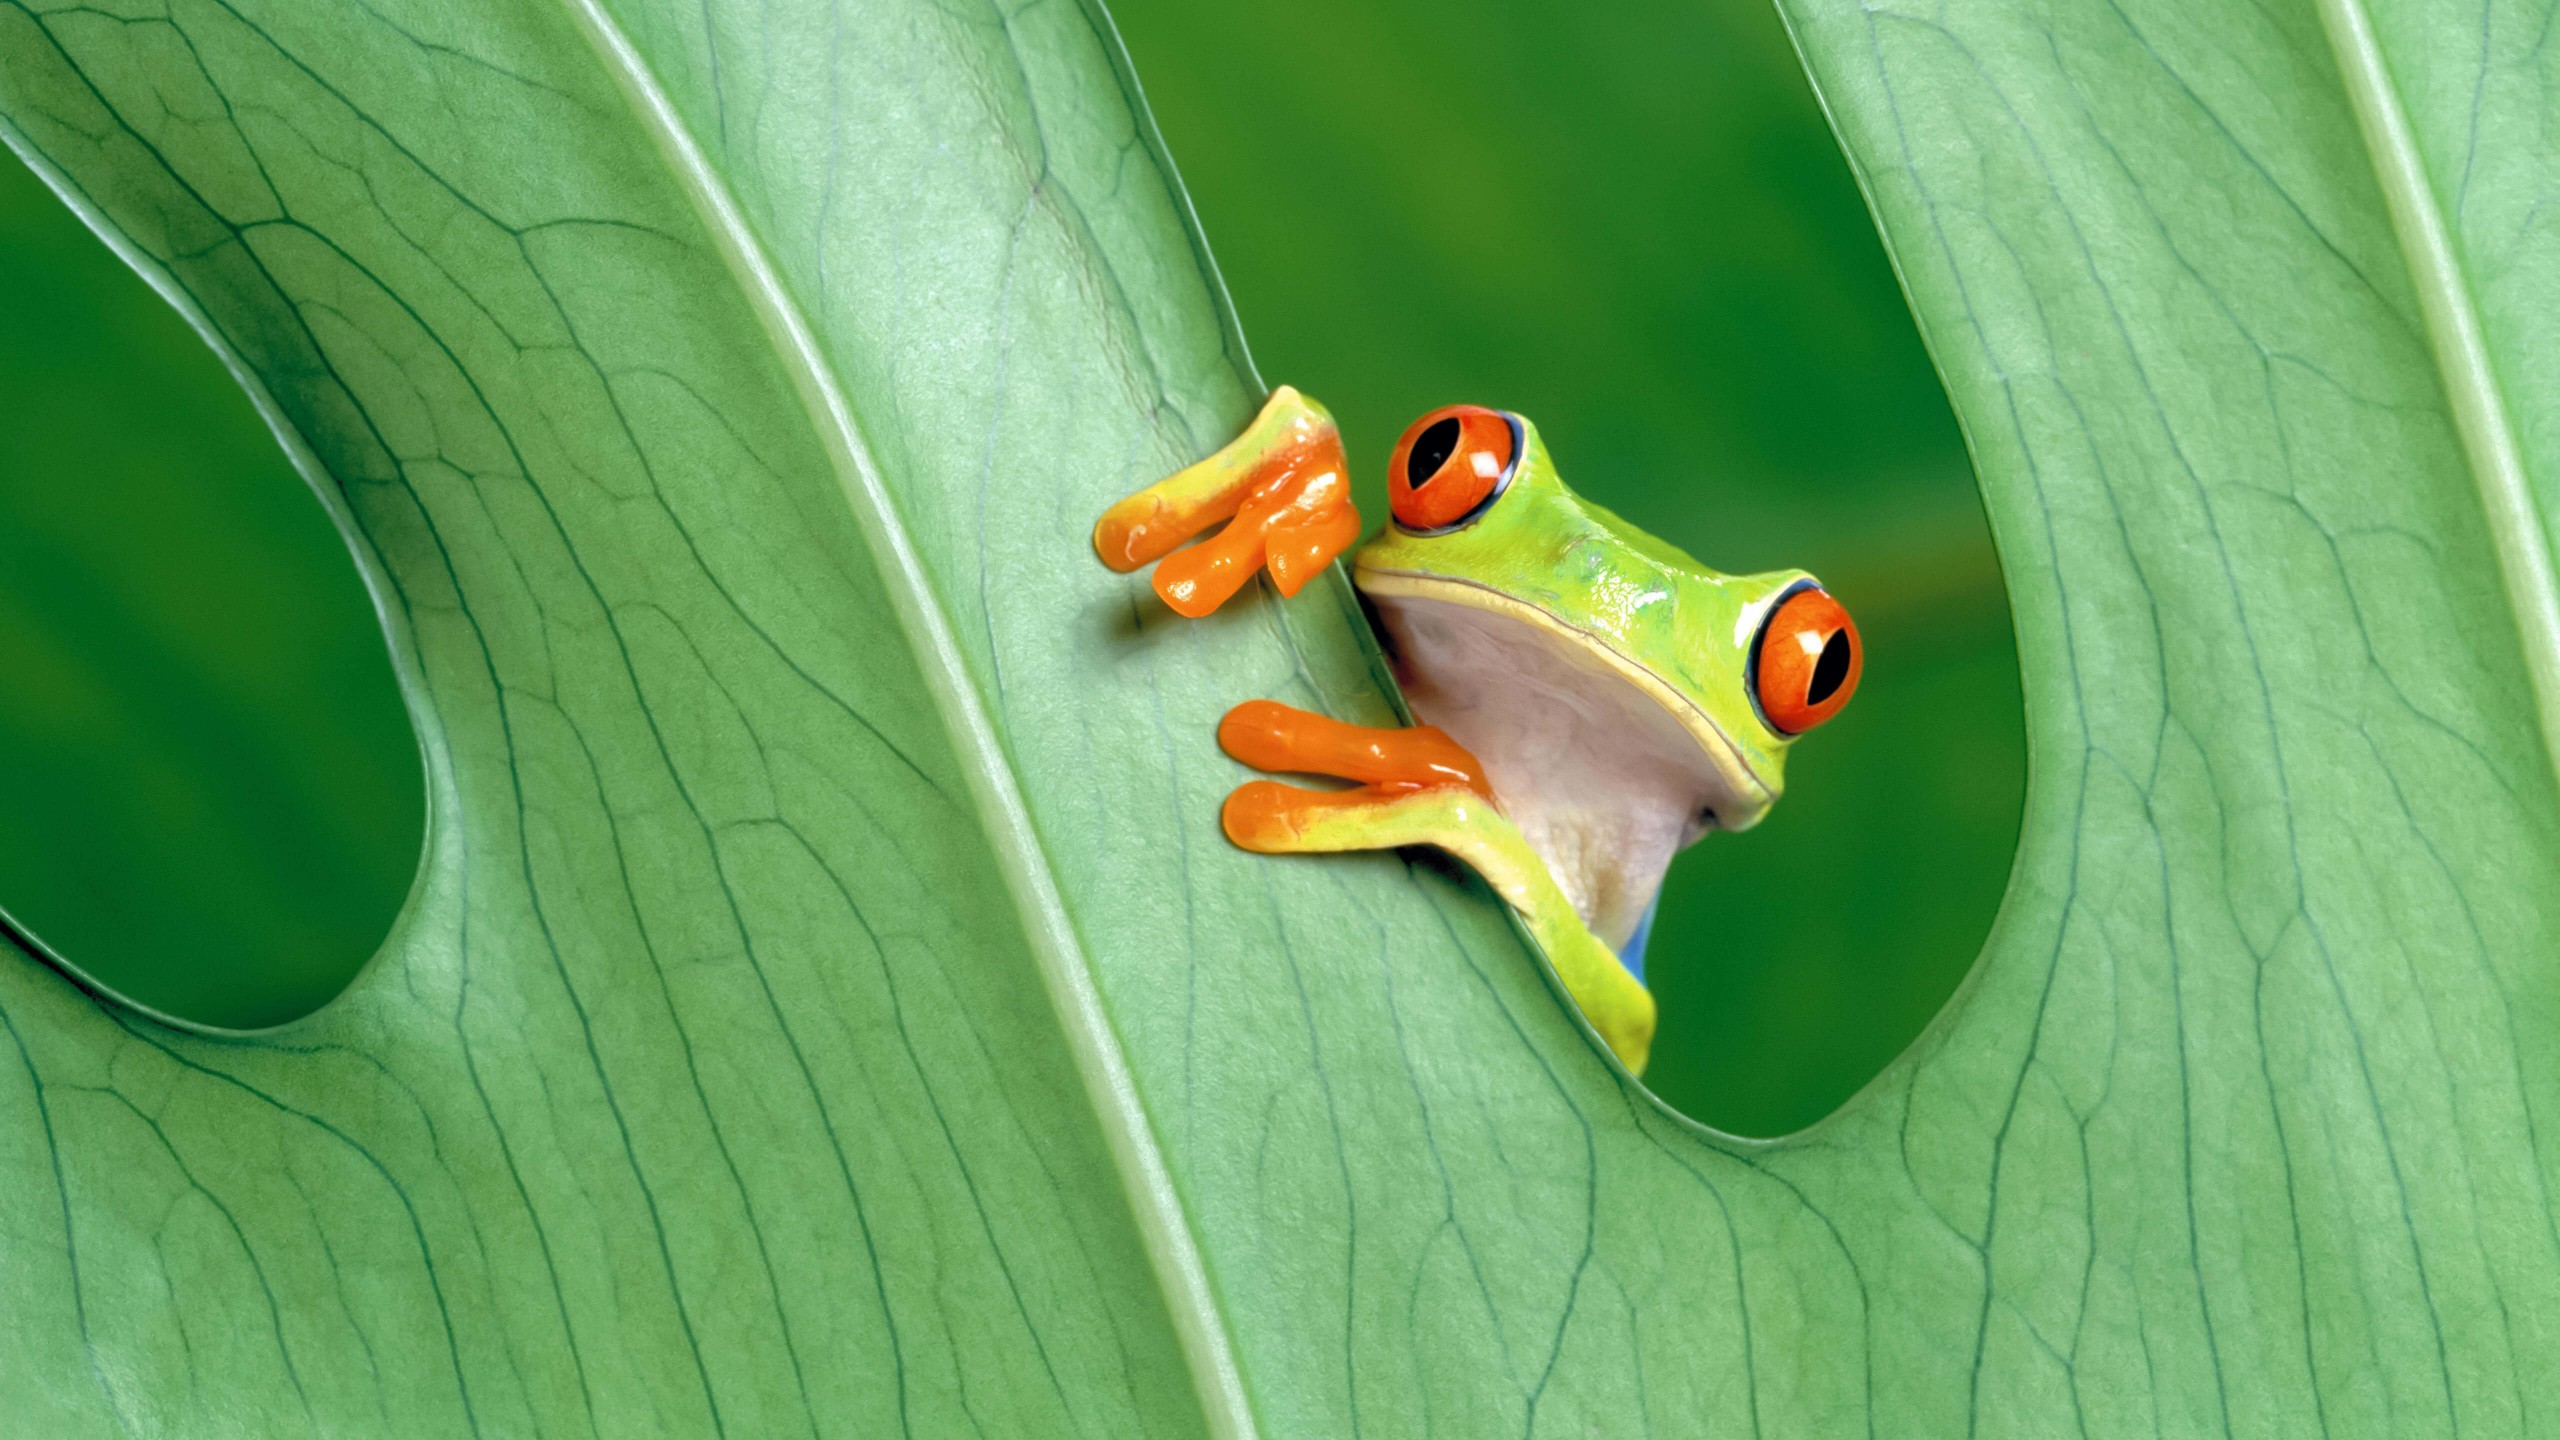 Red Eyed Tree Frog Wallpaper for Desktop 2560x1440